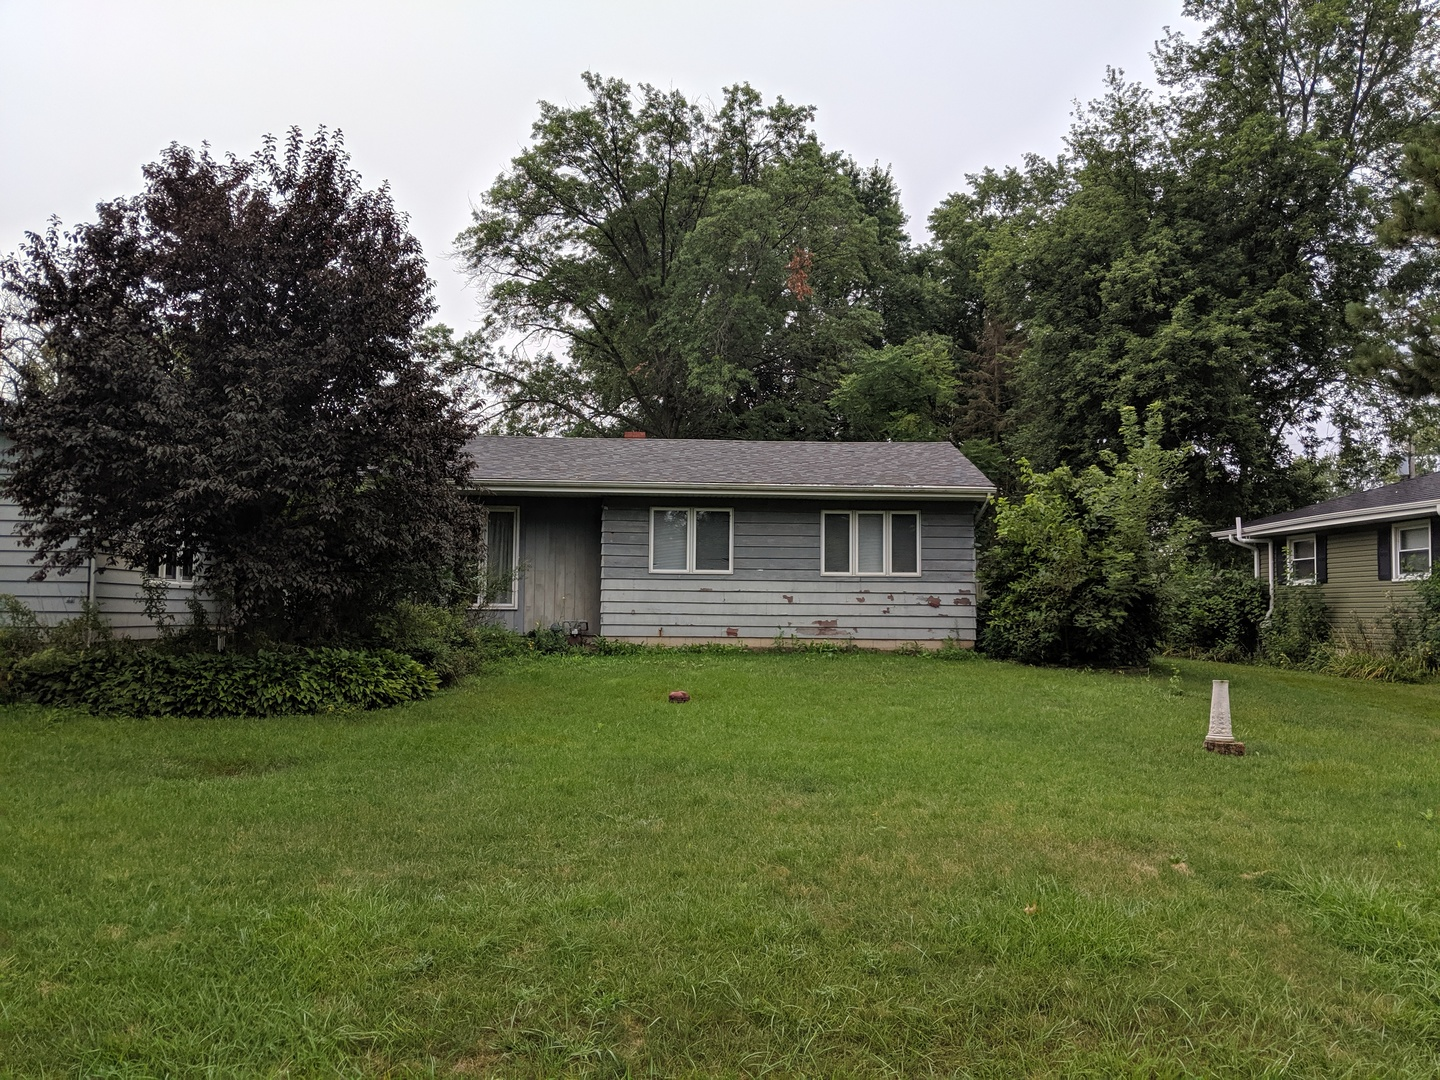 124 Barbara Lane, New Lenox in Will County, IL 60451 Home for Sale